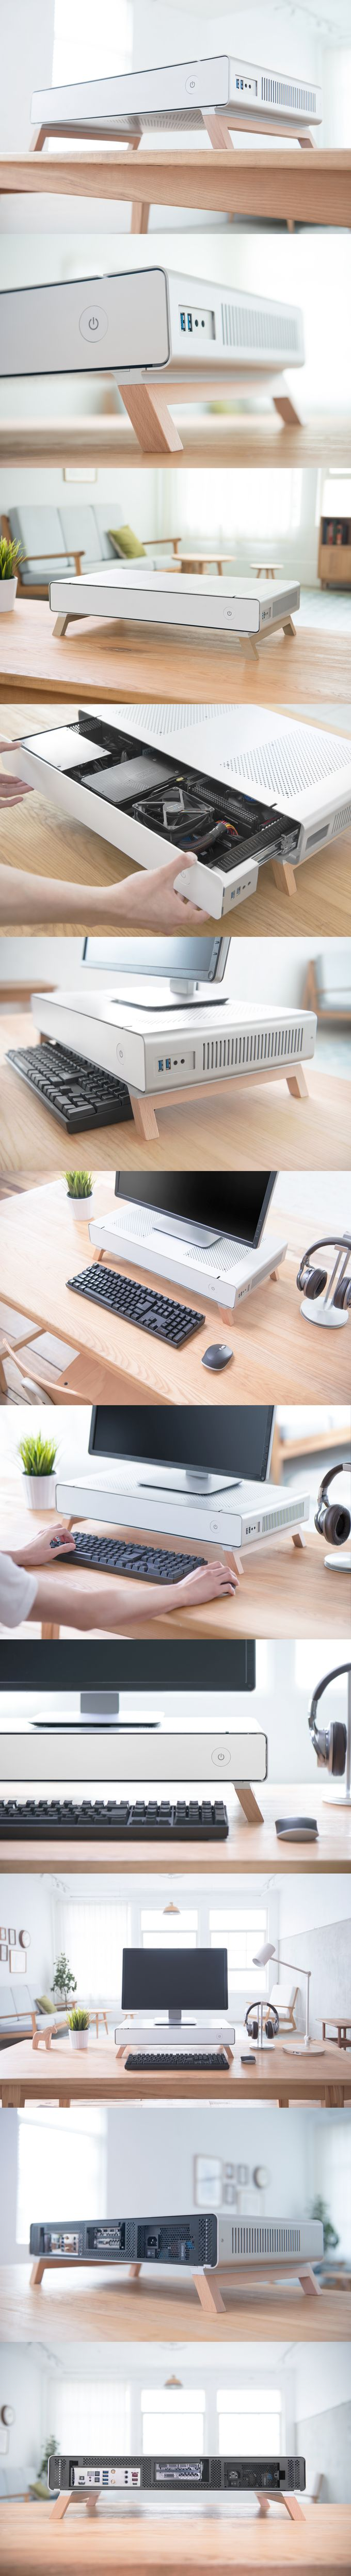 20 best Wood pc images on Pinterest   DIY, Design magazine and Game